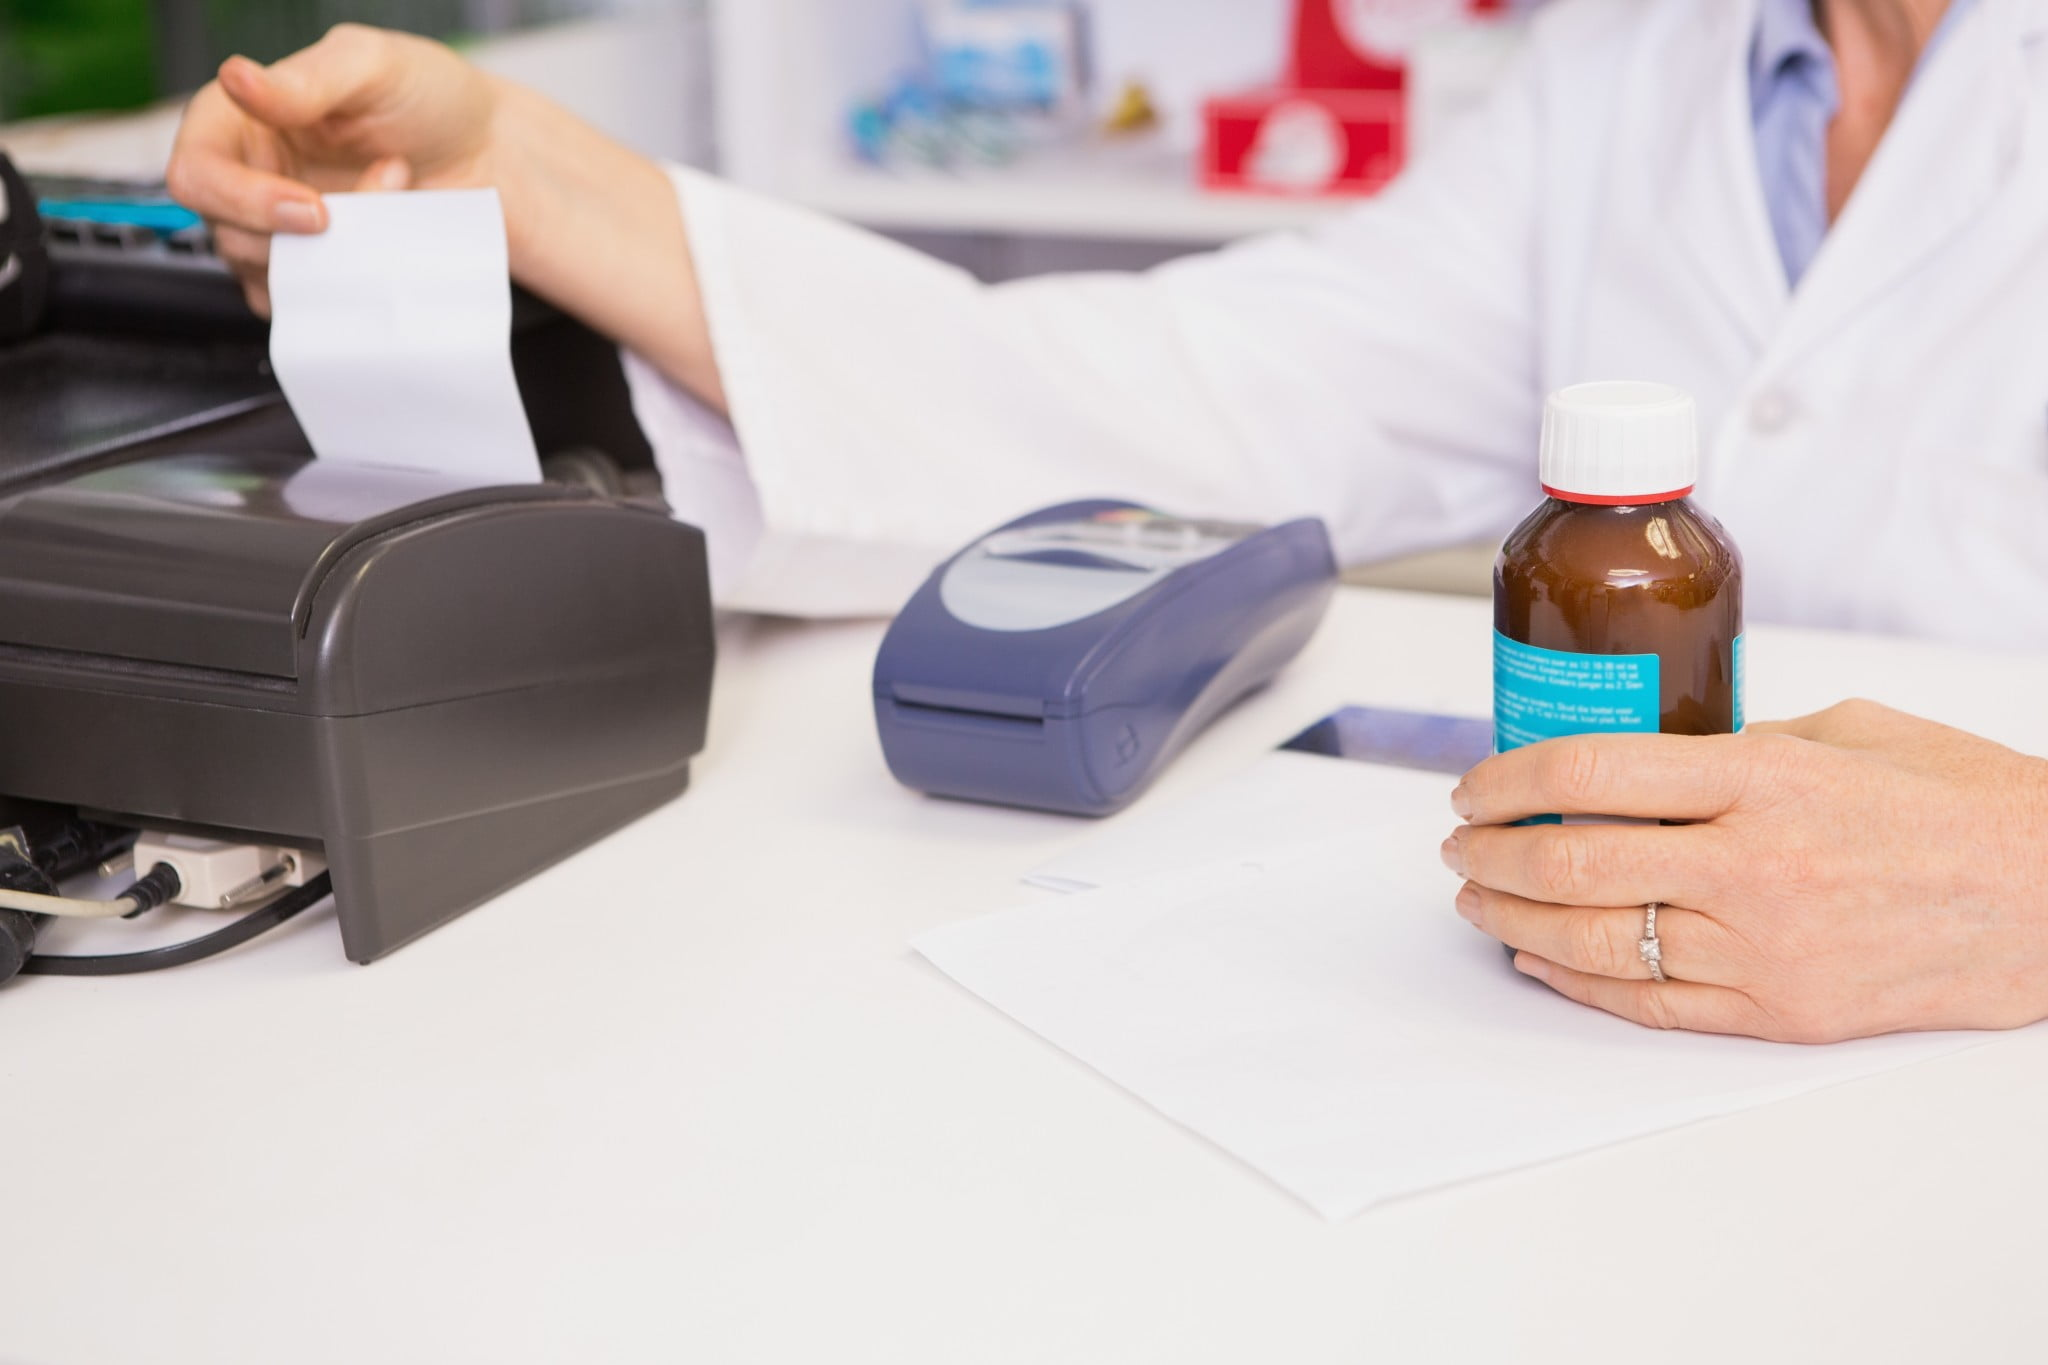 pharmacist at POS machine with bottle of medicine